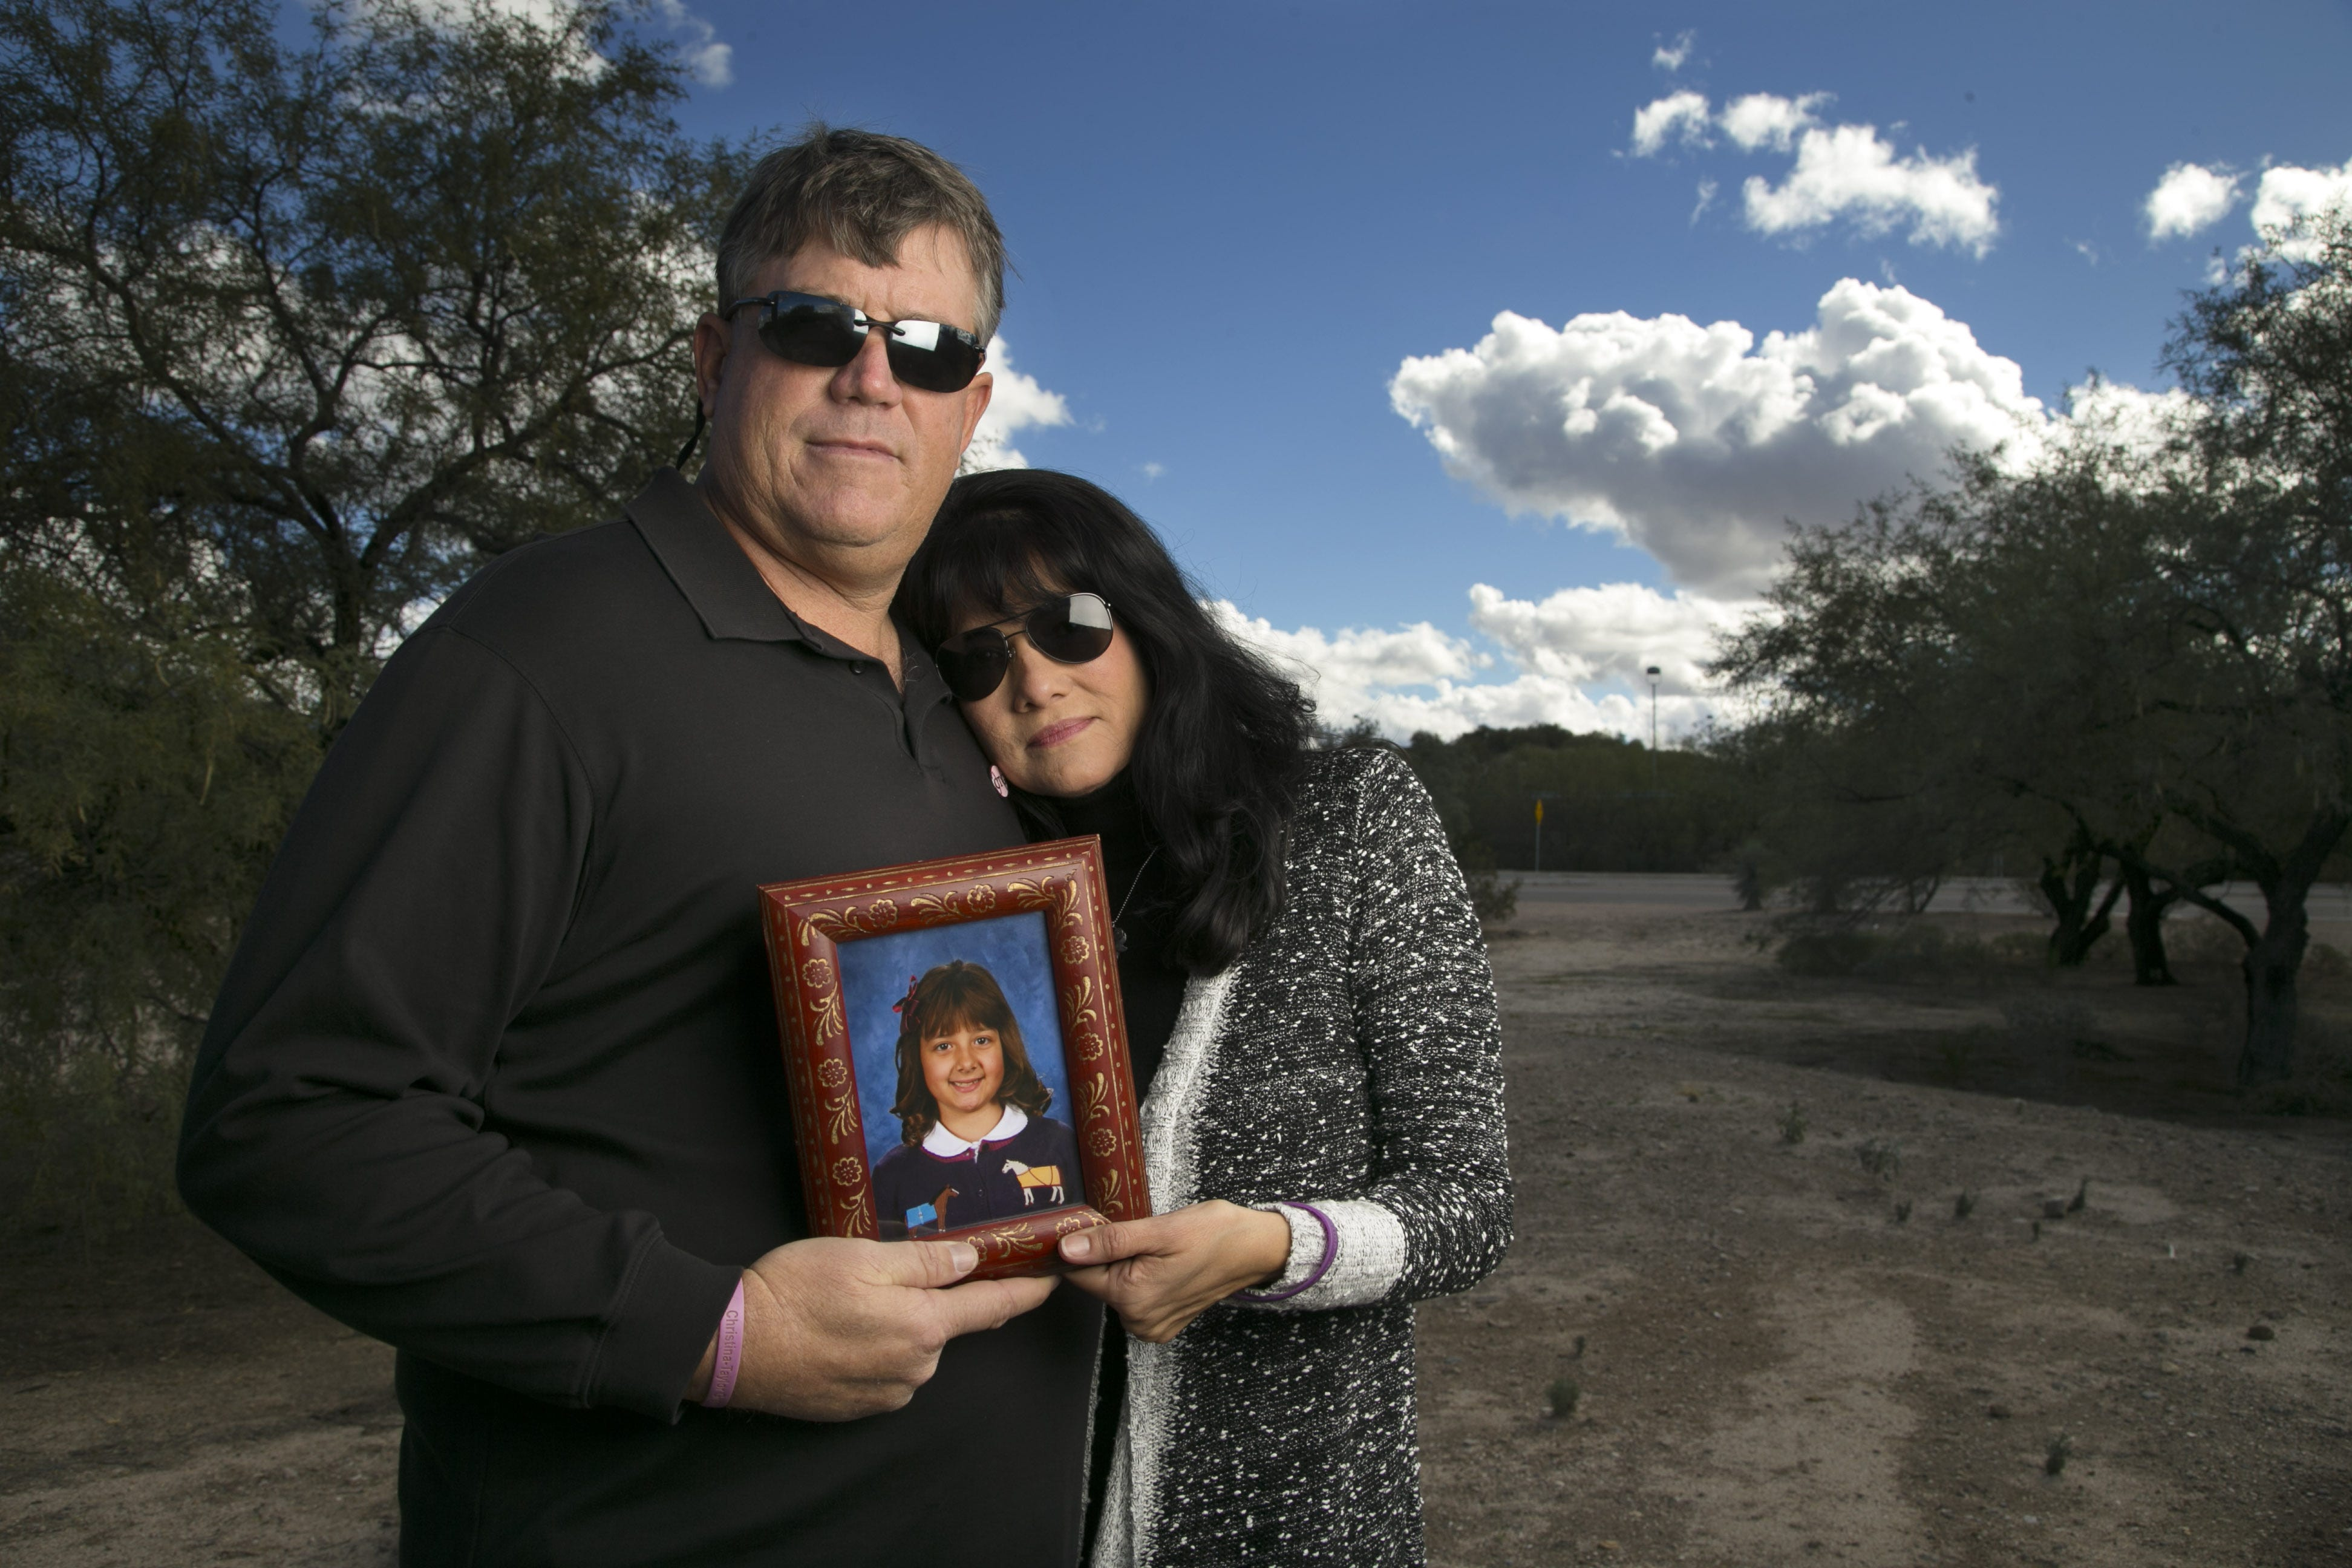 Tucson Shooting Still Seems Unreal For Parents Of Christina Taylor Green Who Never Got To Grow Up